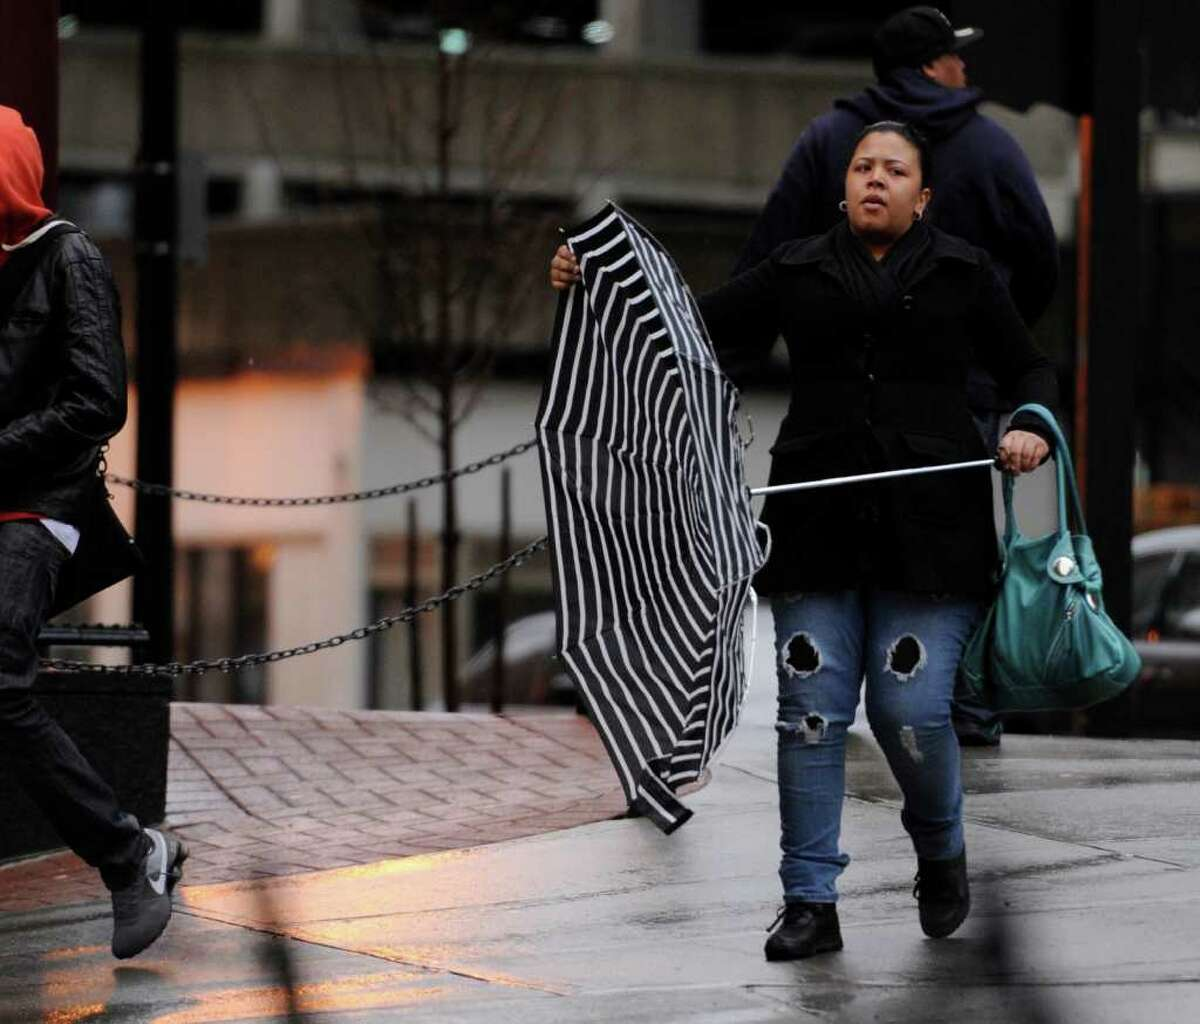 A pedestrian fights with an umbrella in downtown Albany, New York, on April 5, 2011, on a rainy, blustery day. (Skip Dickstein / Times Union)